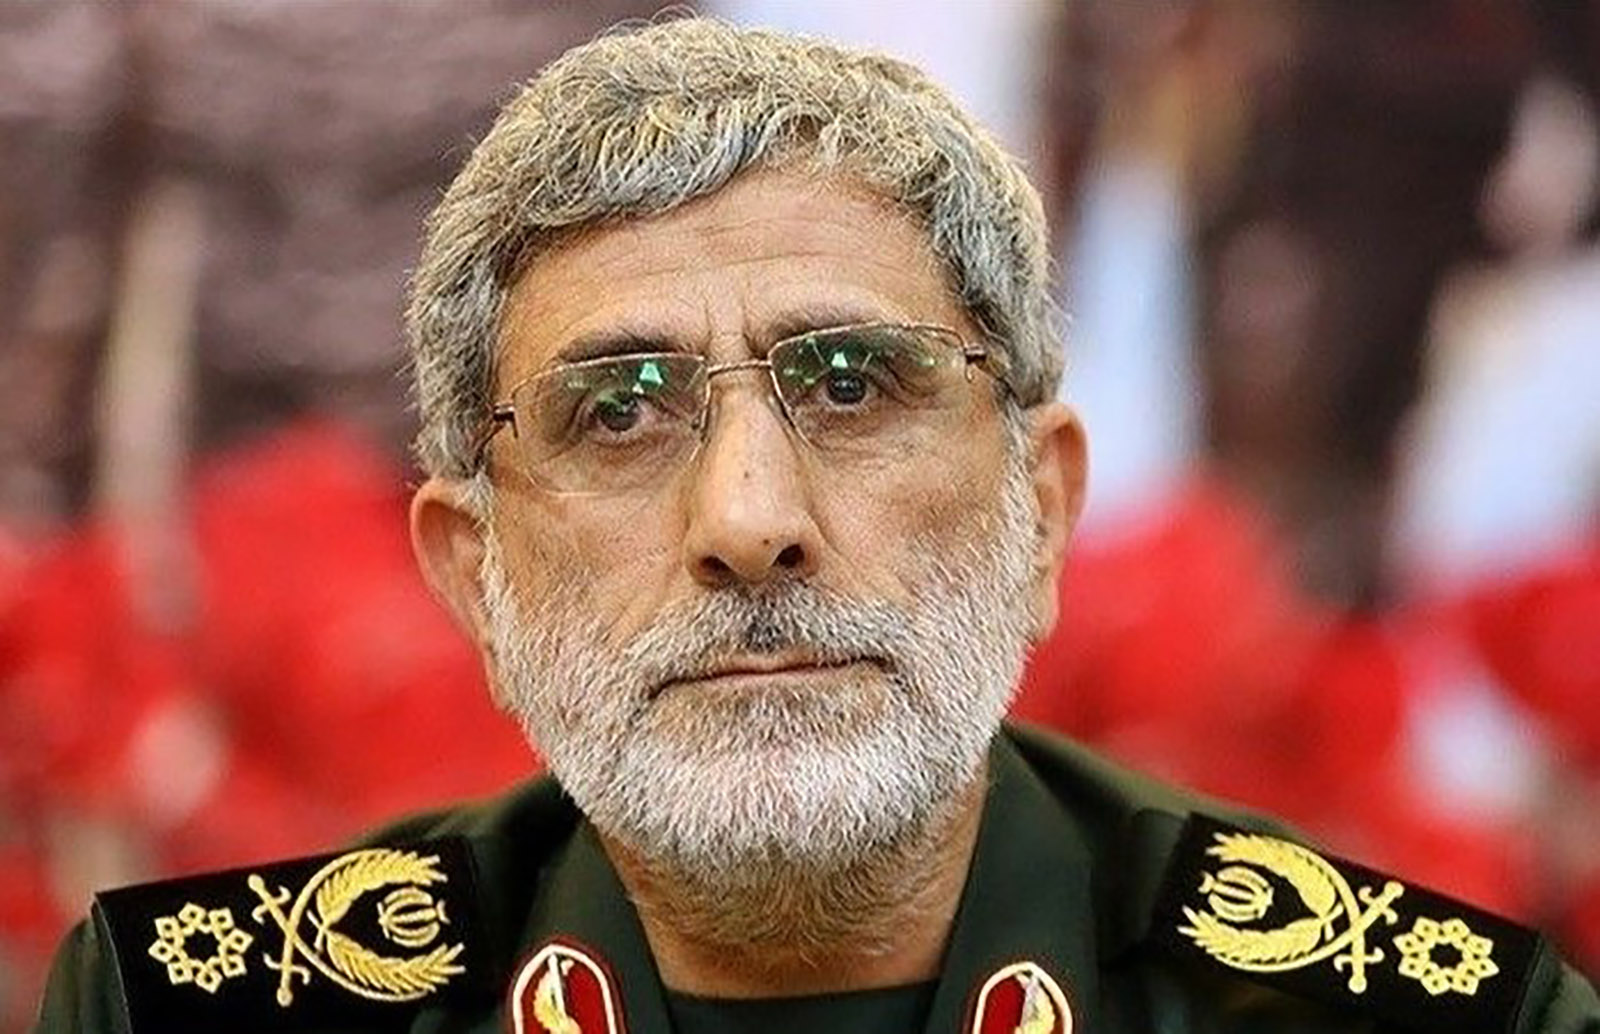 Ismail Qaani has been named as the new commander of the Iranian Revolutionary Guards' Quds Force. (Handout/Iranian Leader Press Office/Anadolu Agency via Getty Images)